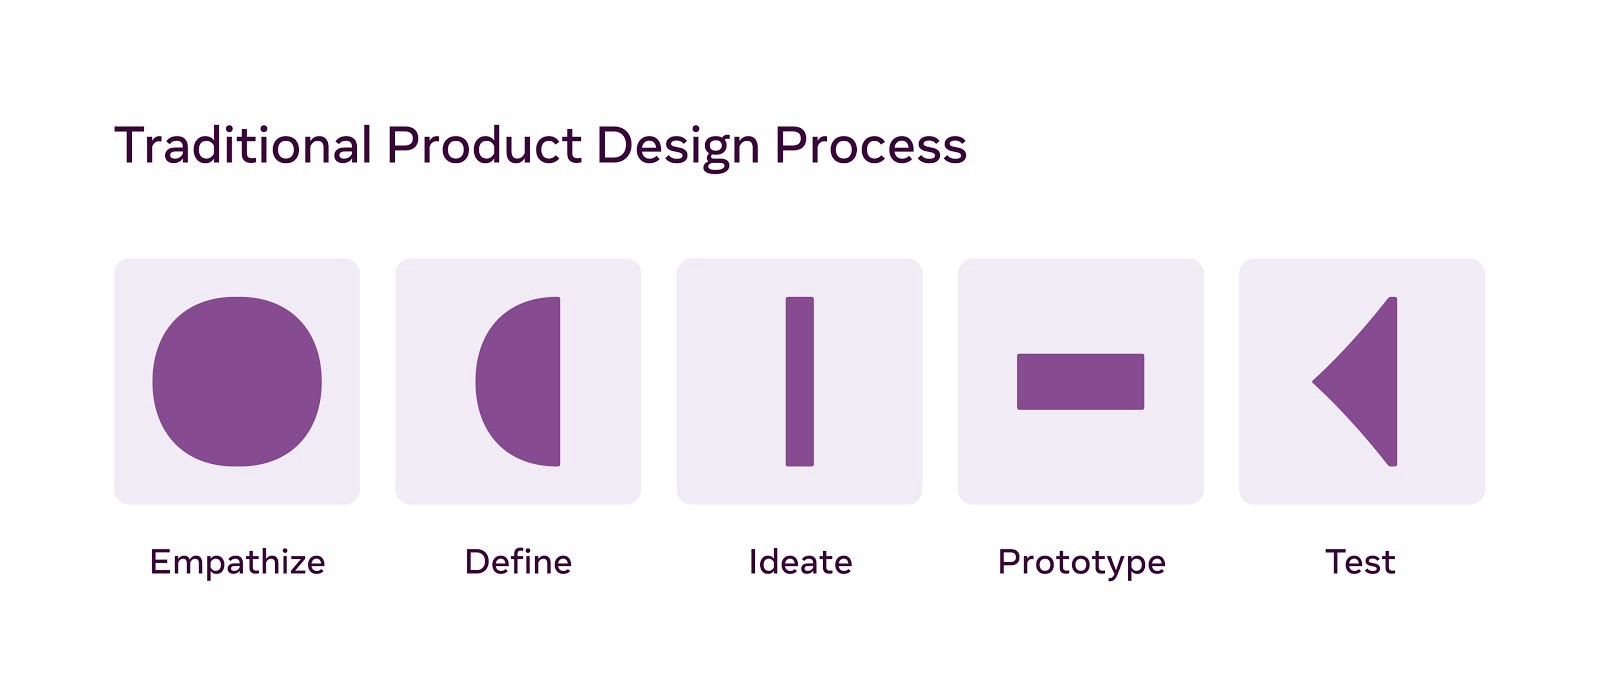 Traditional Product Design Process: Empathize, Define, Ideate, Prototyp, Test